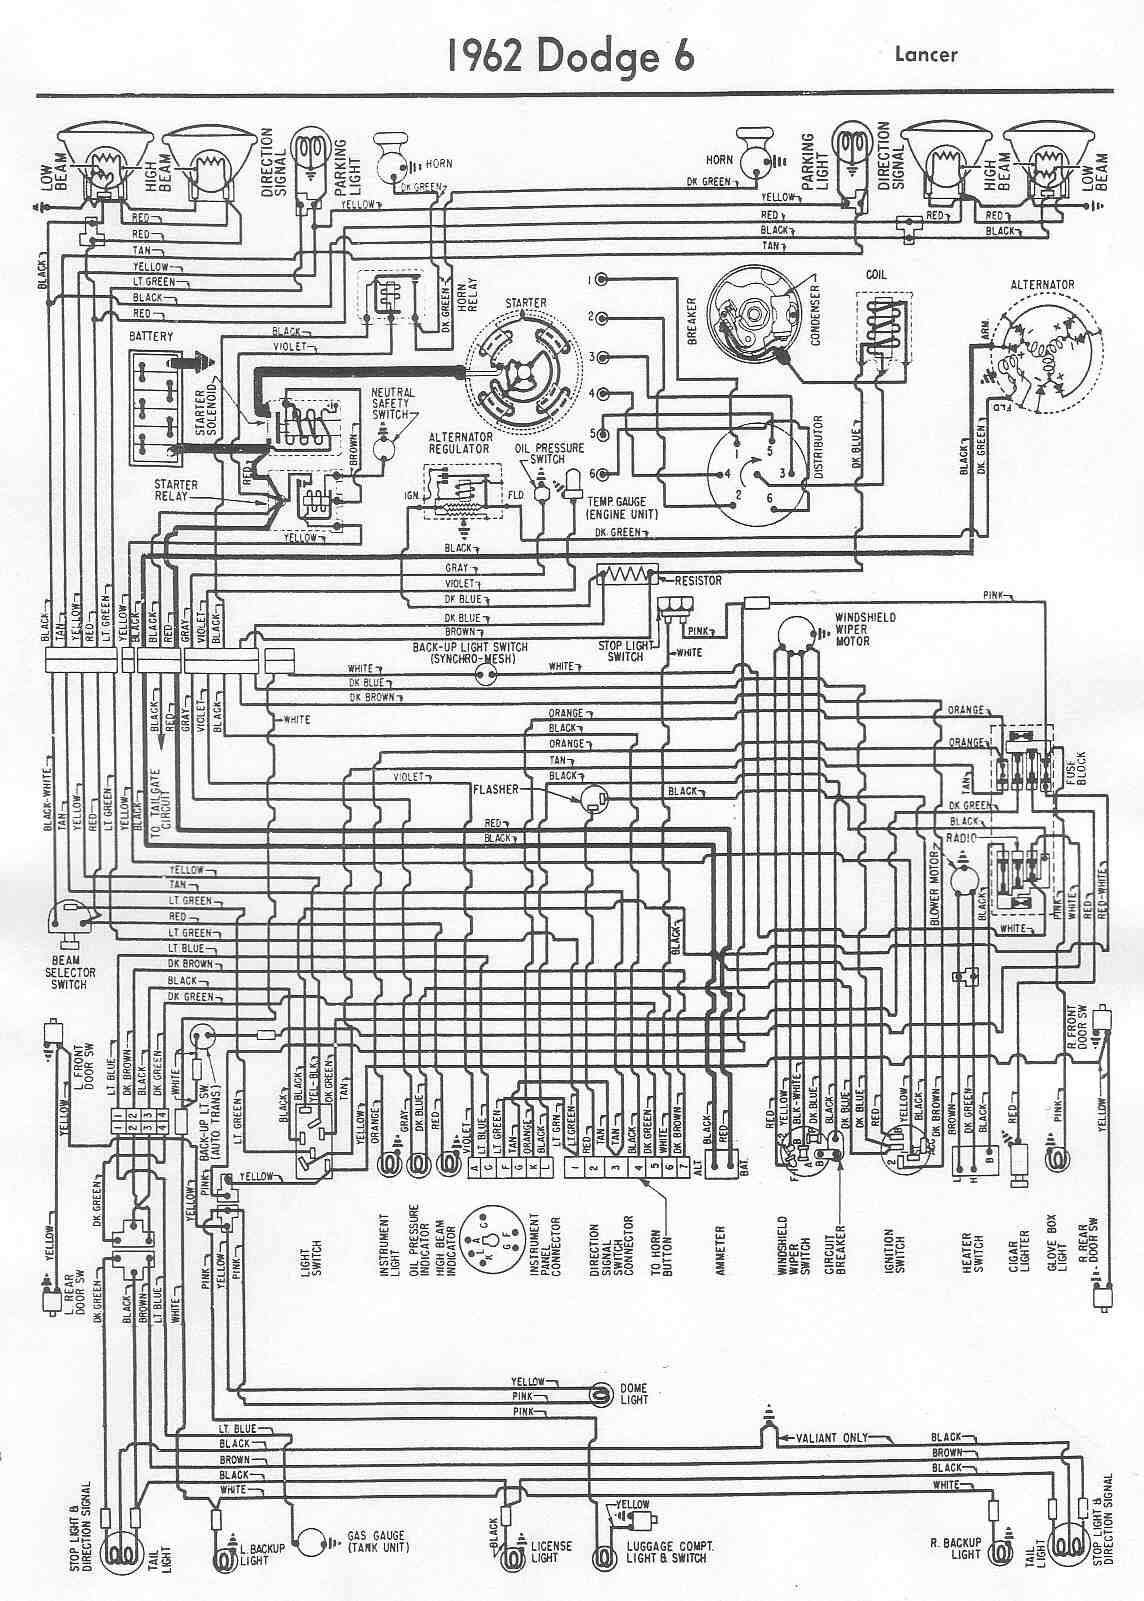 Dodge Car Manuals Wiring Diagrams Pdf Fault Codes 87 Dakota Fuse Box Download